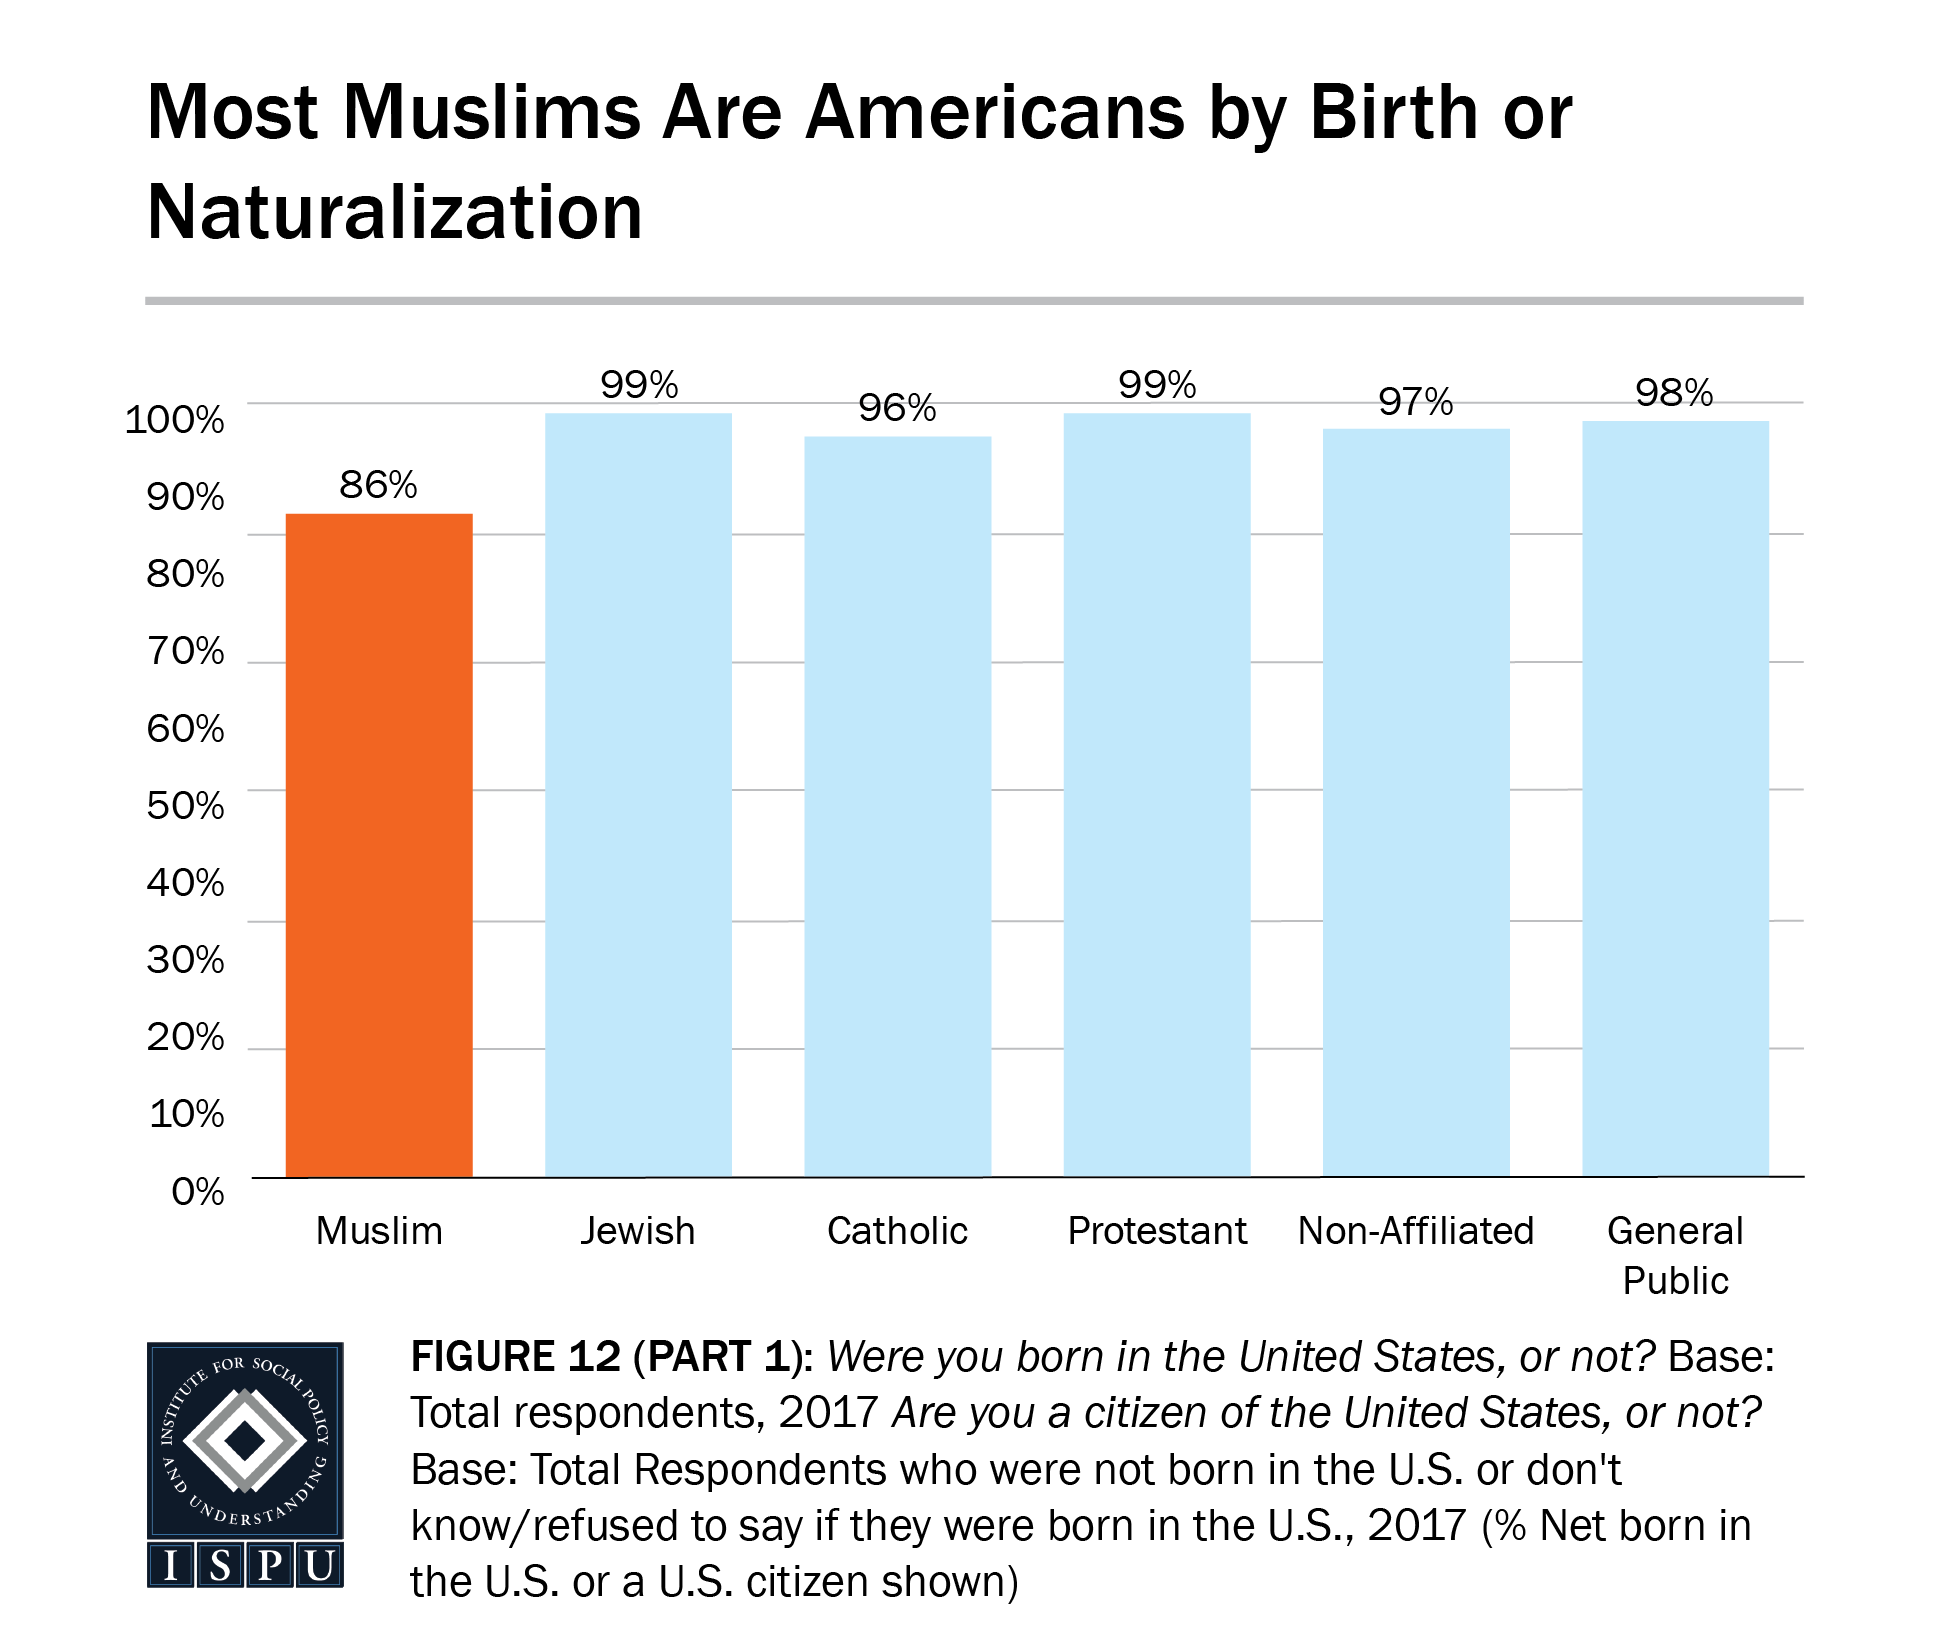 Figure 12, Part 1: Bar graph showing that most Muslims (86%) are Americans by birth or naturalization